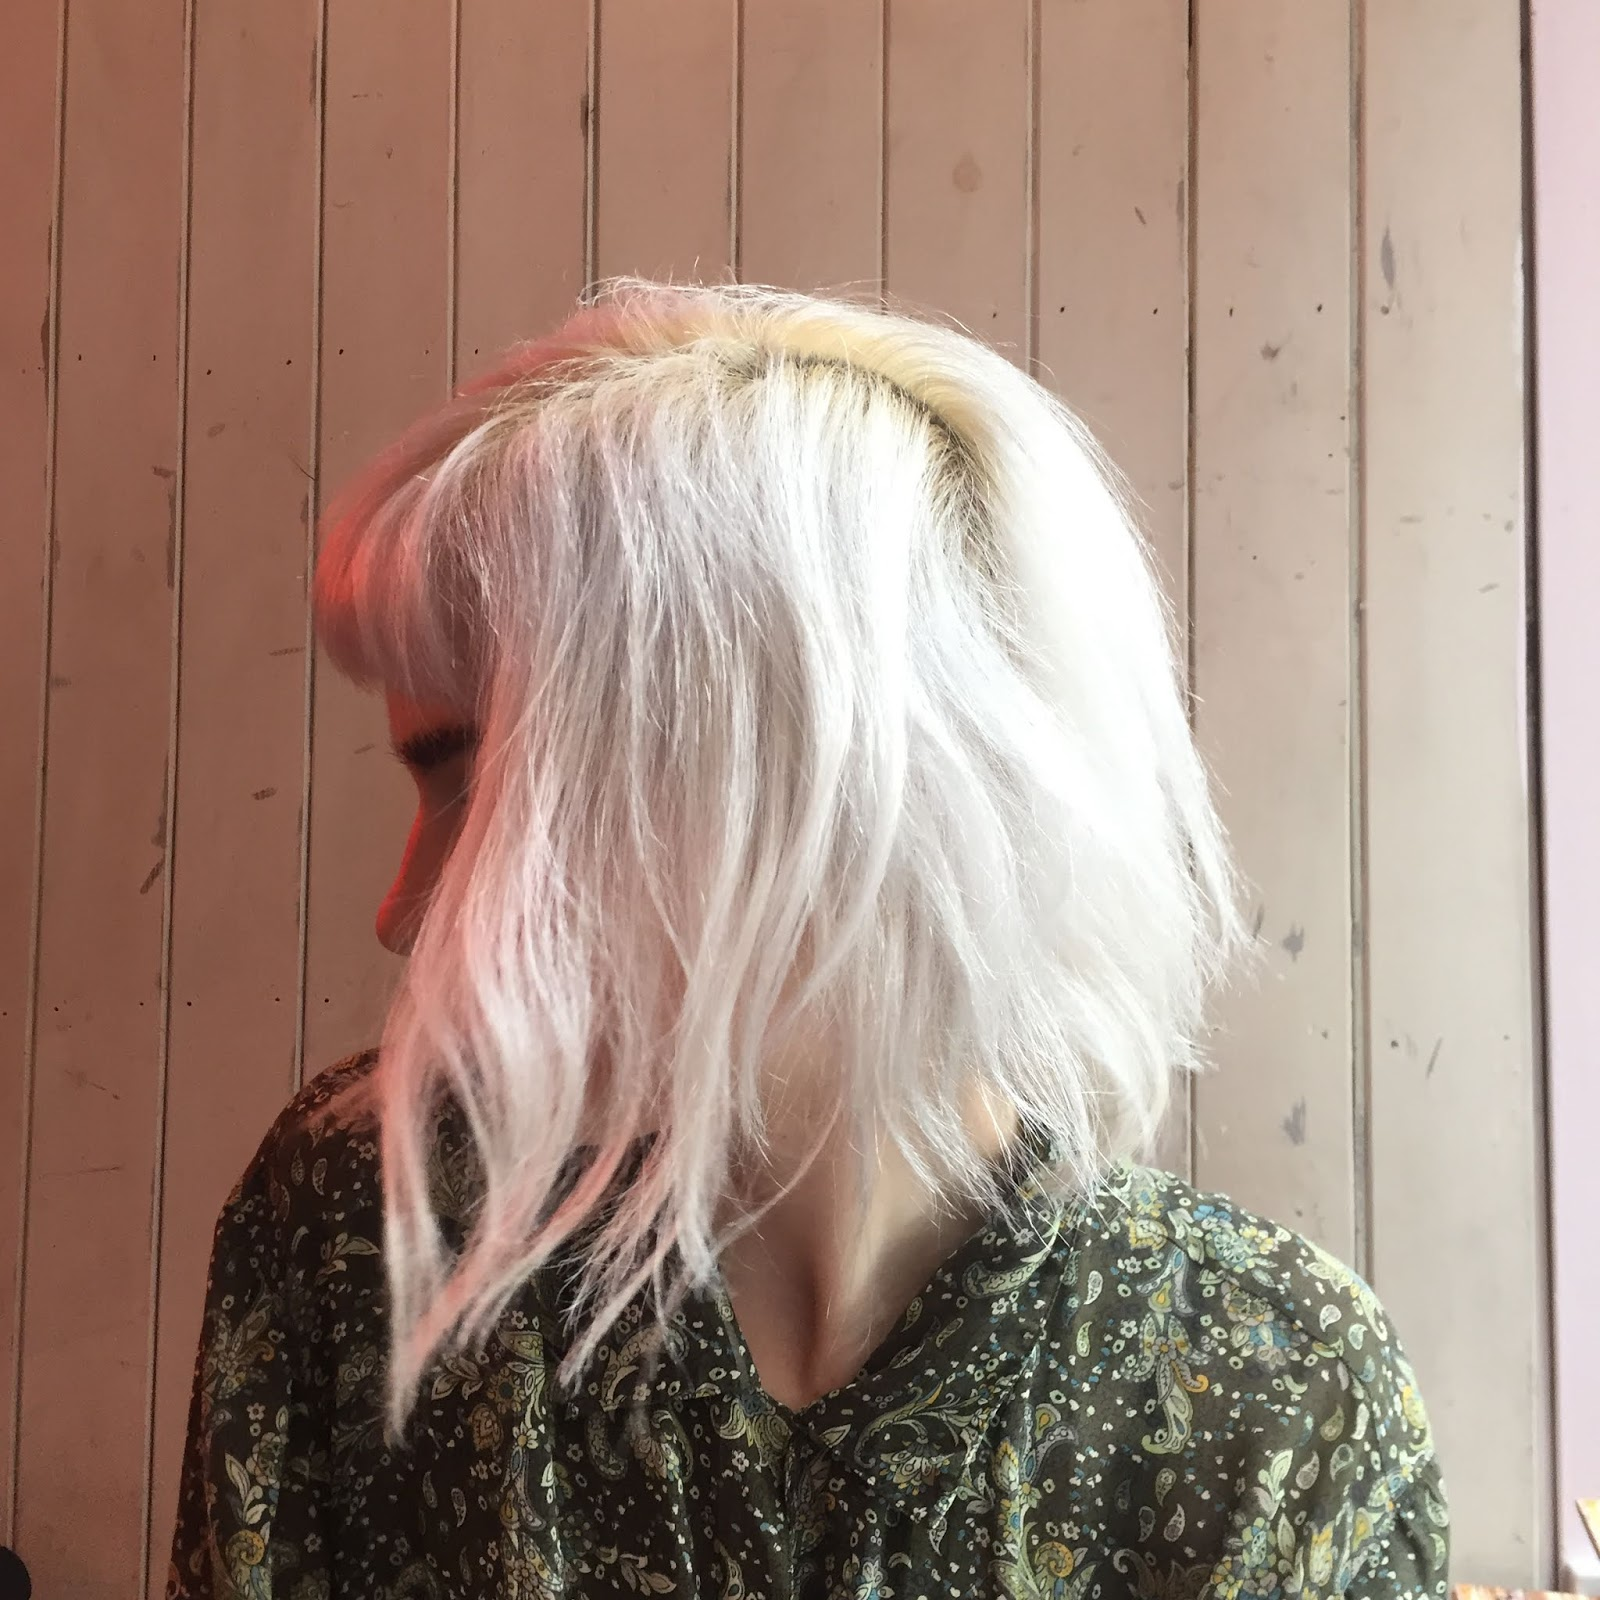 silver haired girl with paisley shirt